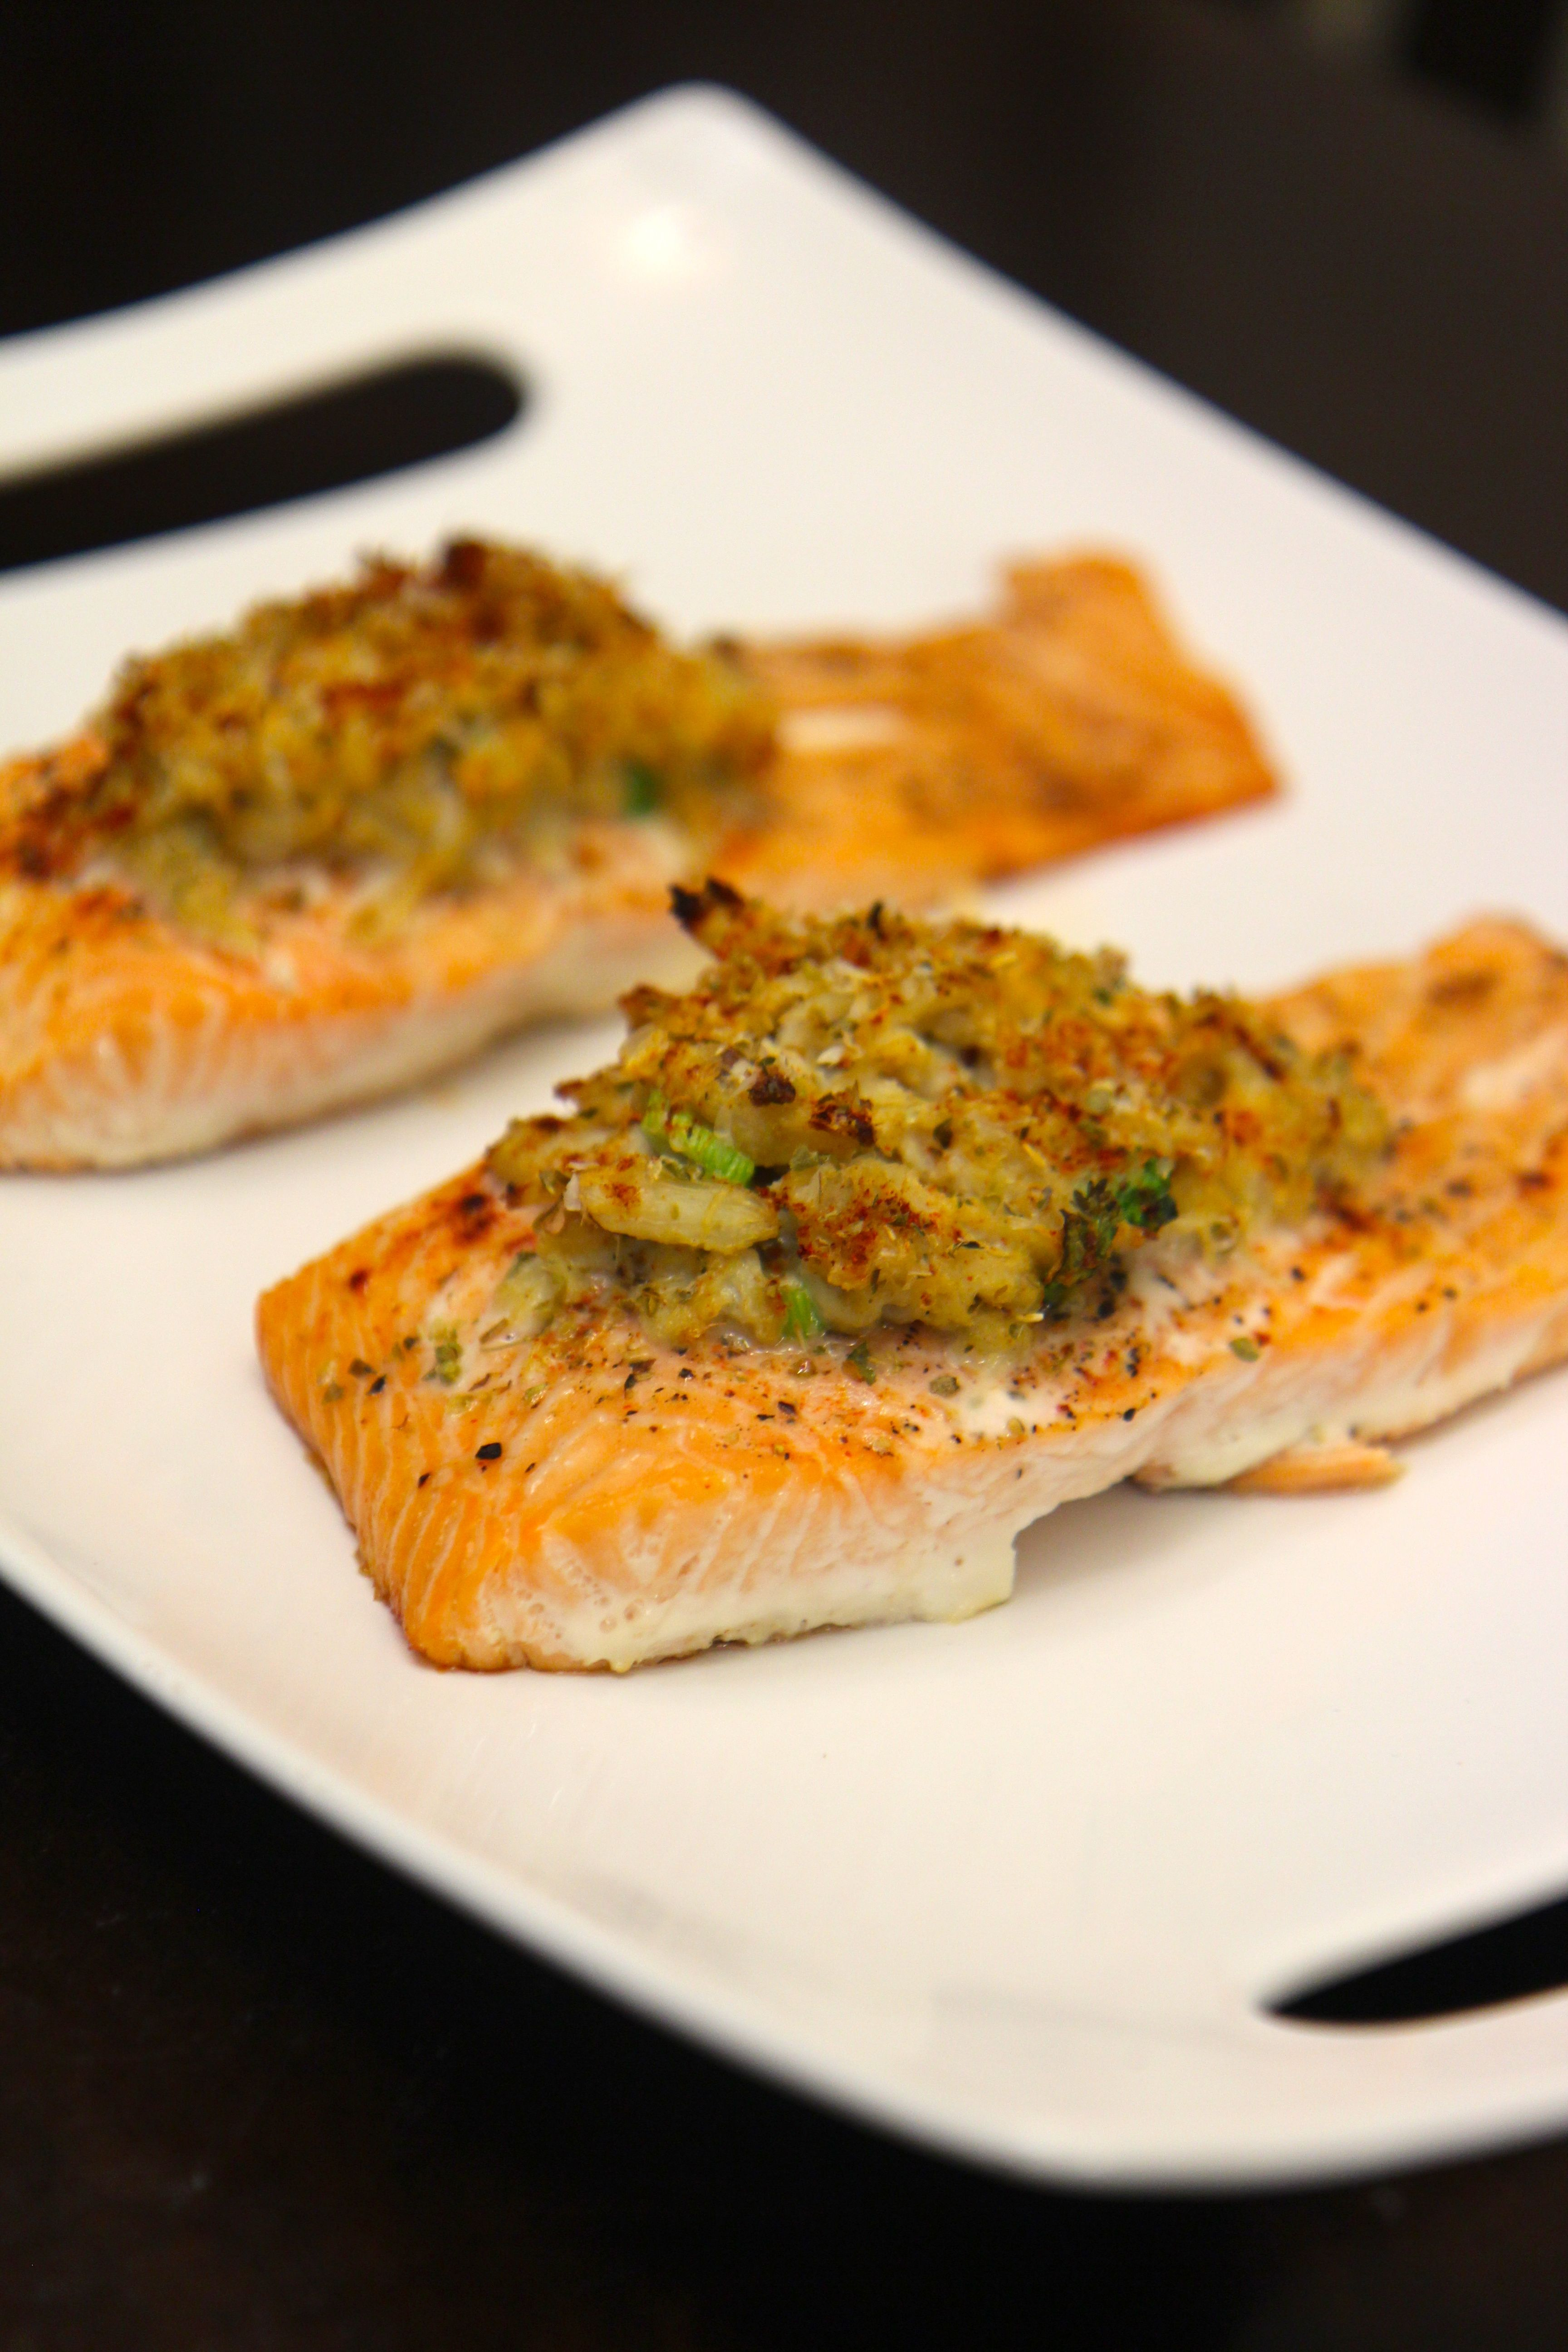 The salmon is flavorful and moist as well as a quick meal to prepare.